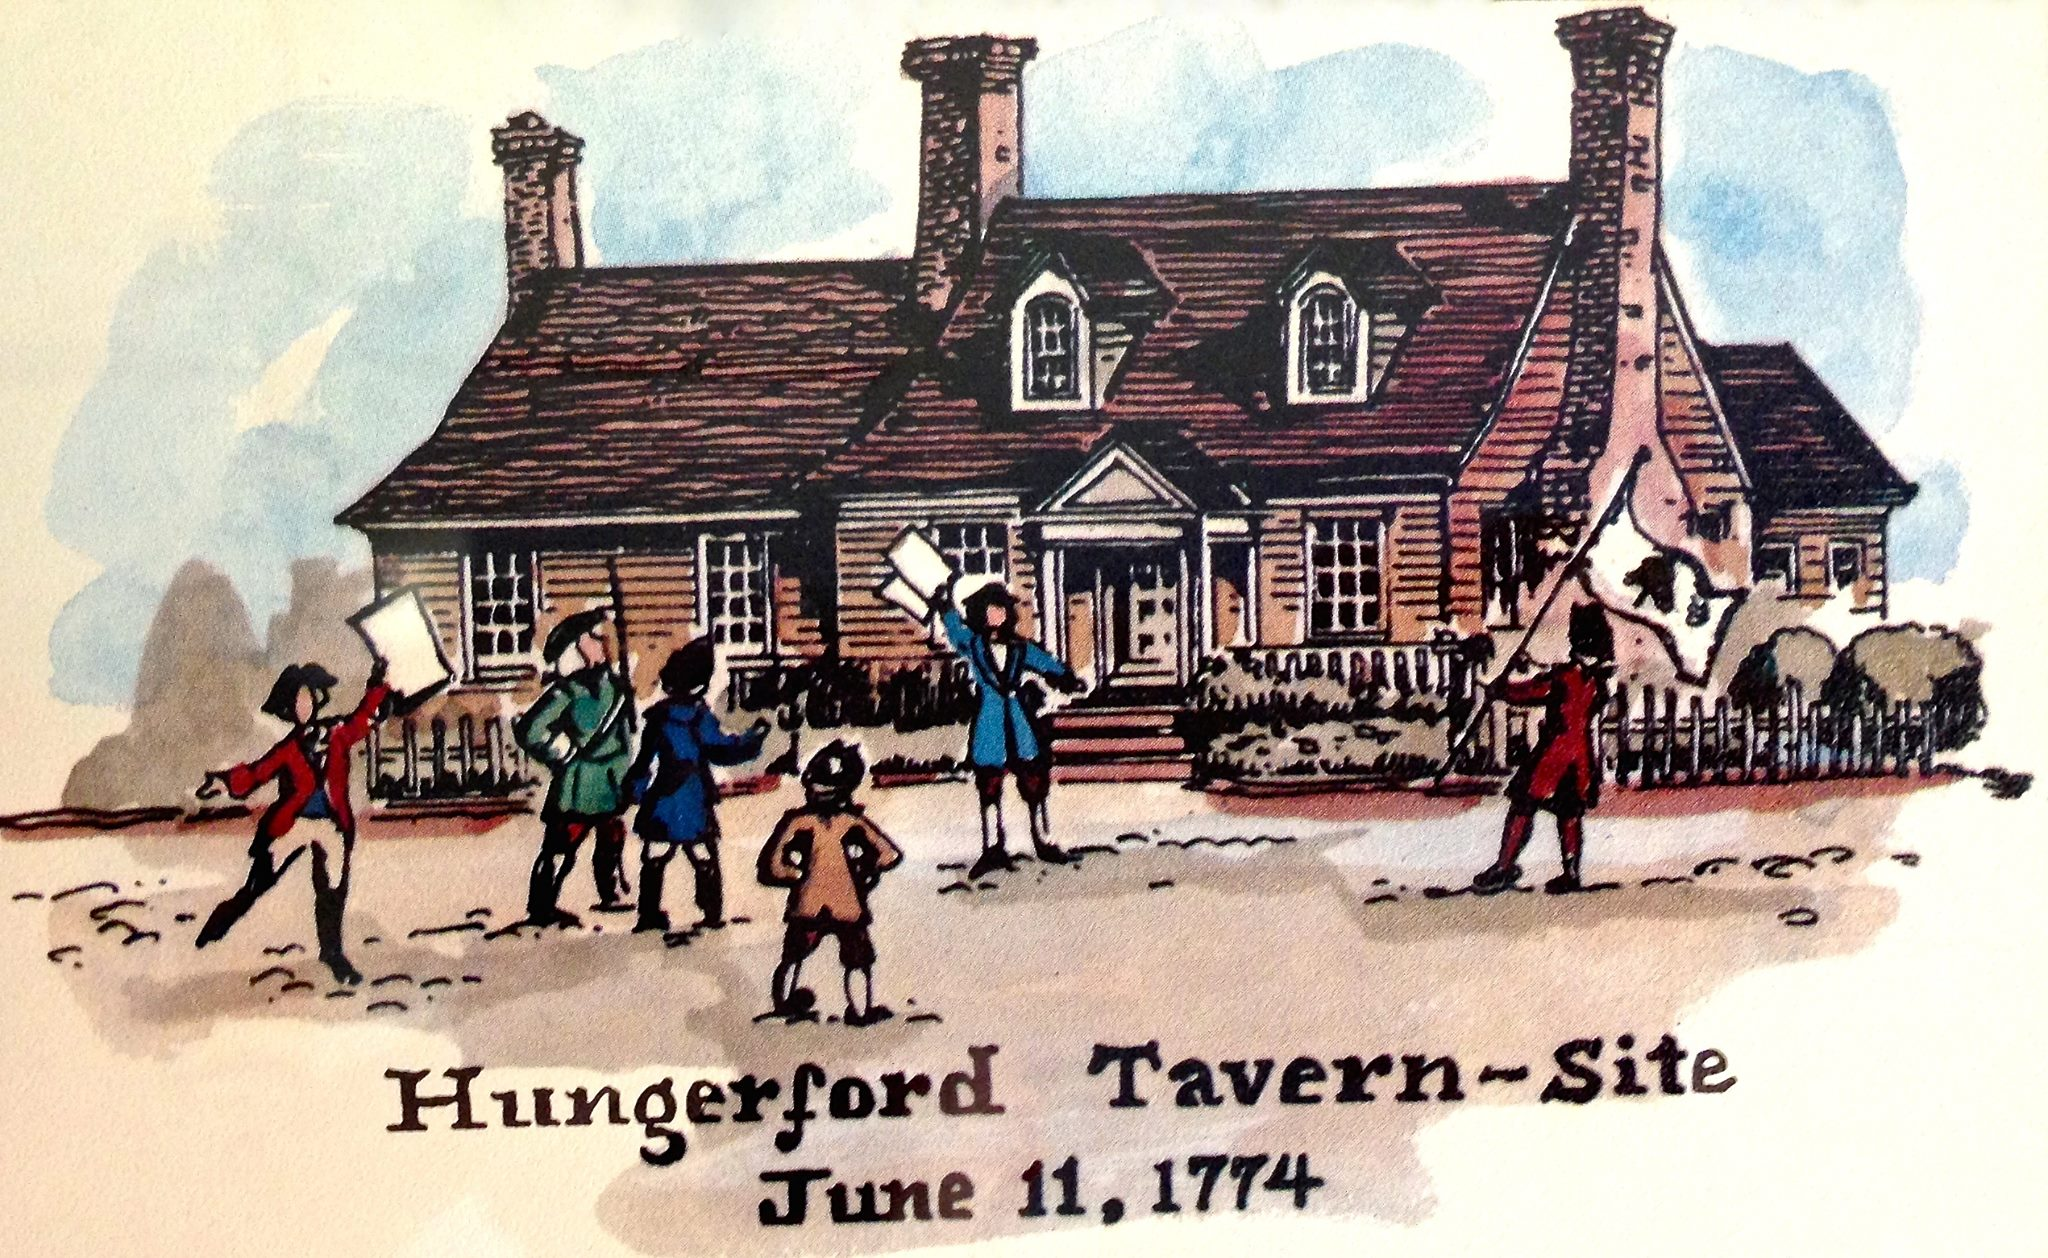 """Hungerford Tavern Site - Rockville, Maryland"" by Carol Stuart Watson. The artist depicts the scene surrounding the Hungerford Tavern just after the Hungerford Resolves are announced."